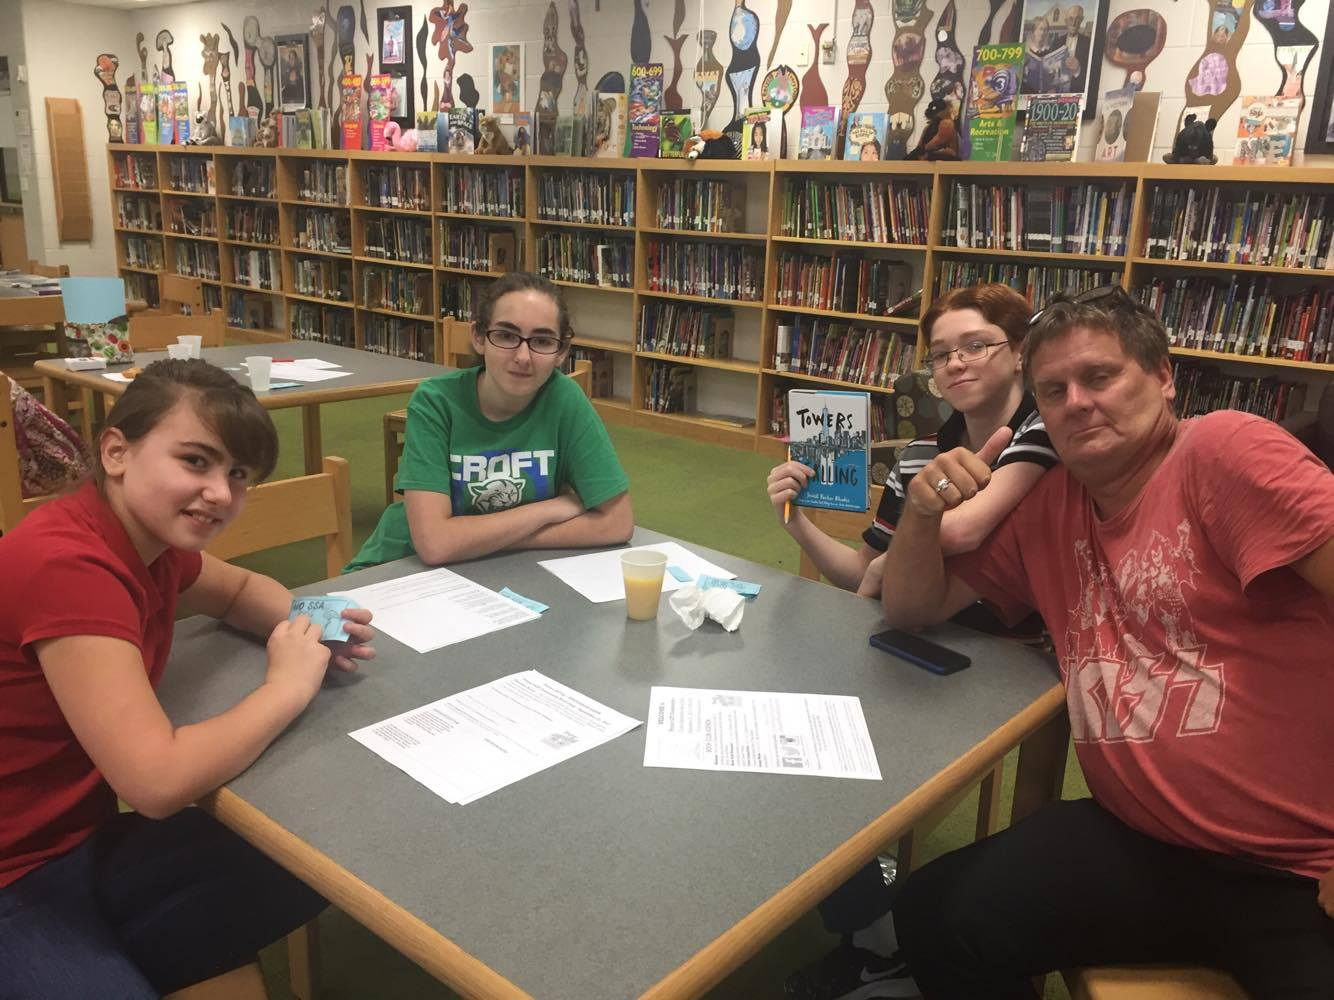 I had a great time at Croft MS this past week attending their monthly  ProjectLit book club. The book was Towers Falling and it was fascinating to  talk about ...